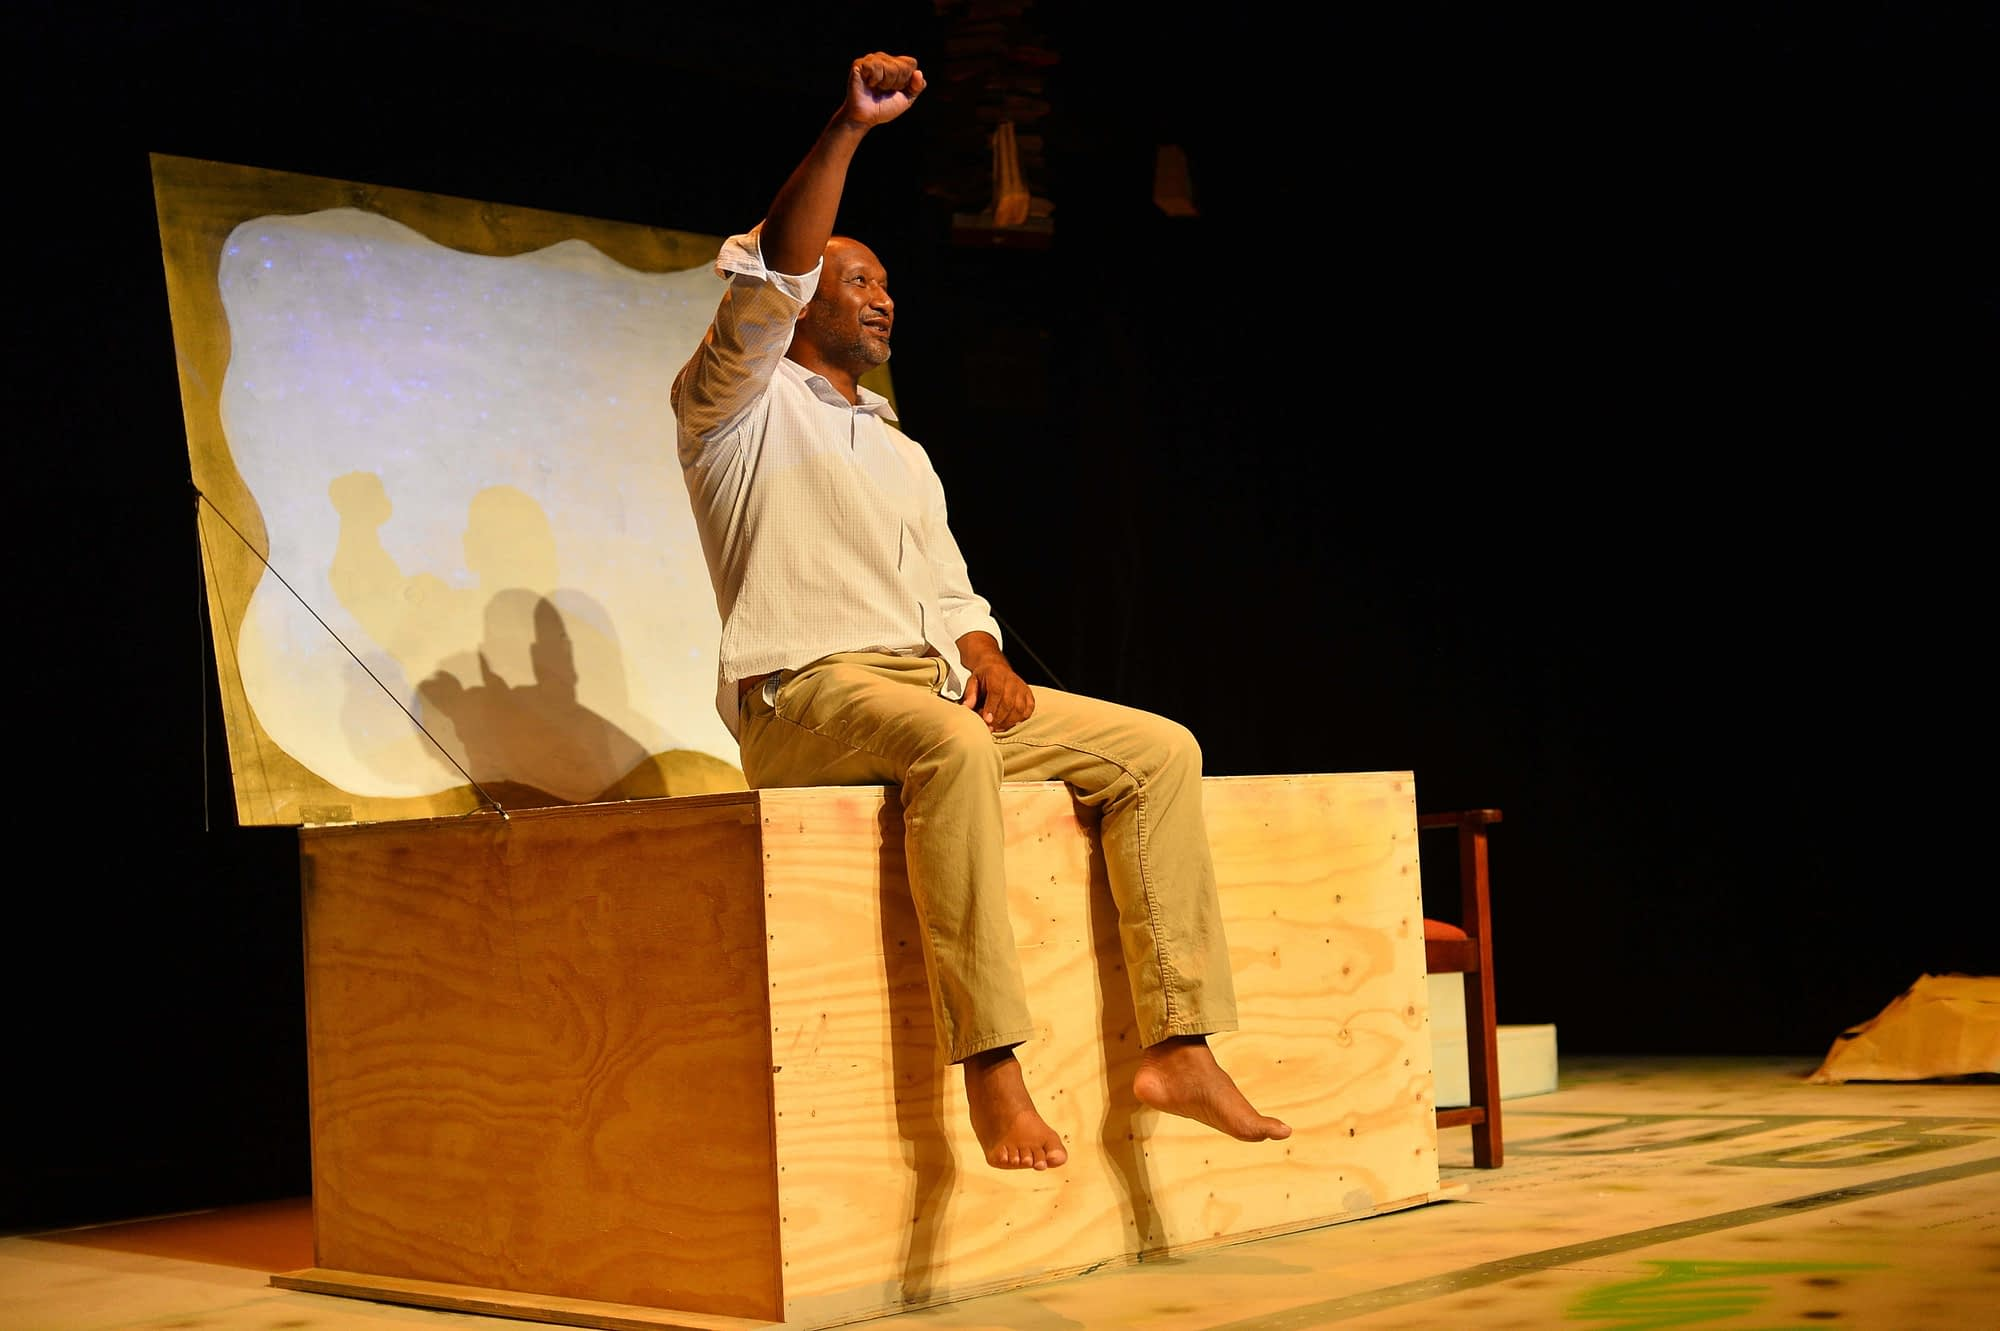 Van Wyk, The Storyteller of Riverlea directed by Christo Davids